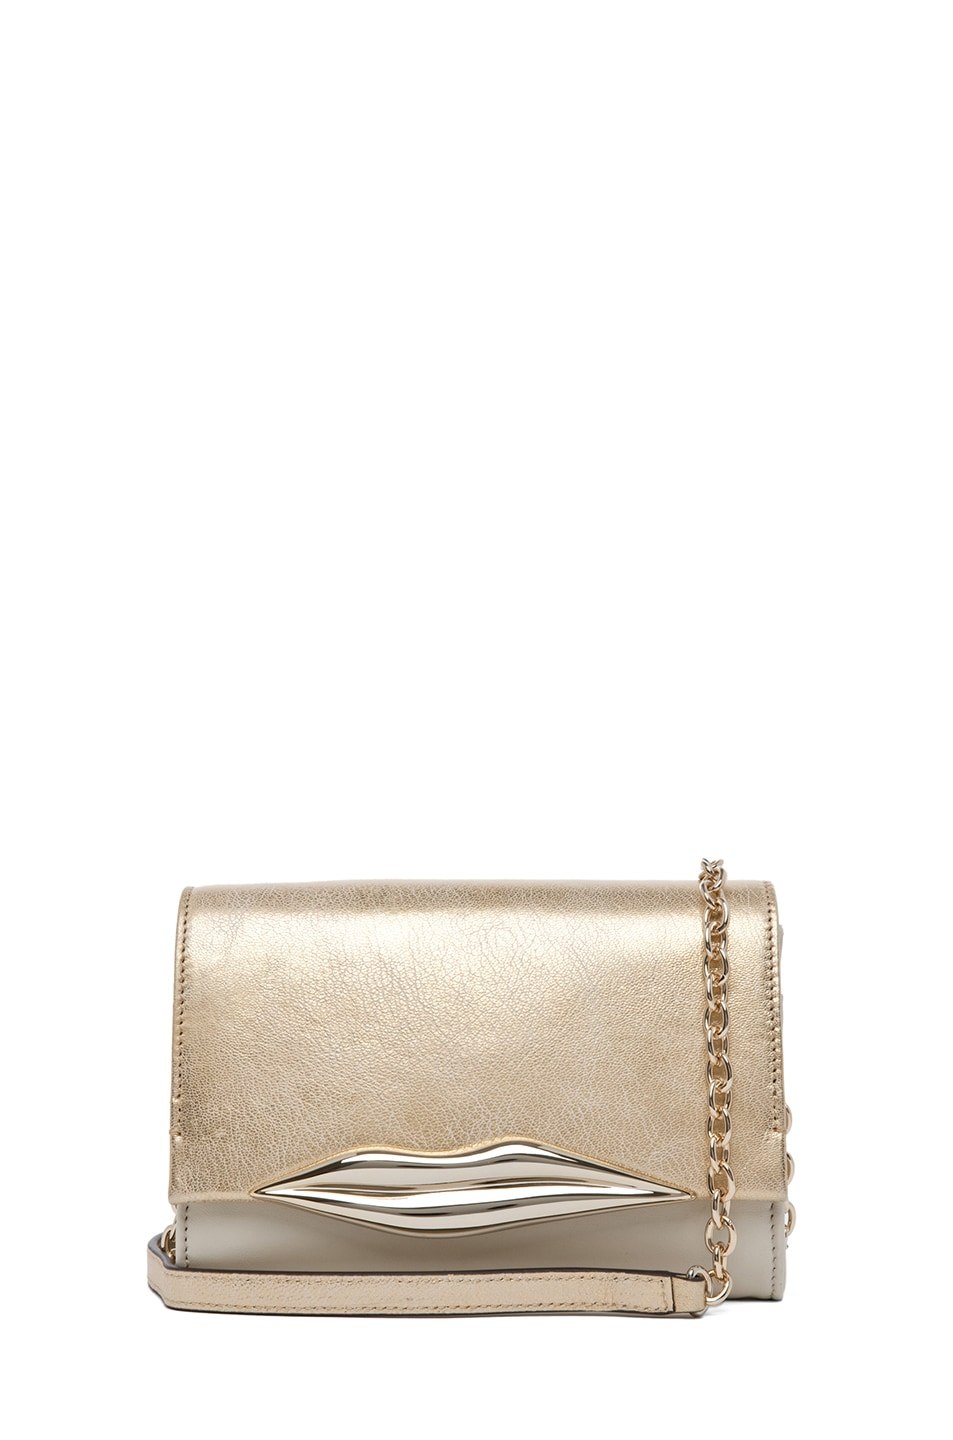 Image 1 of Diane von Furstenberg Lips Mini Soft Metallic in Light Gold